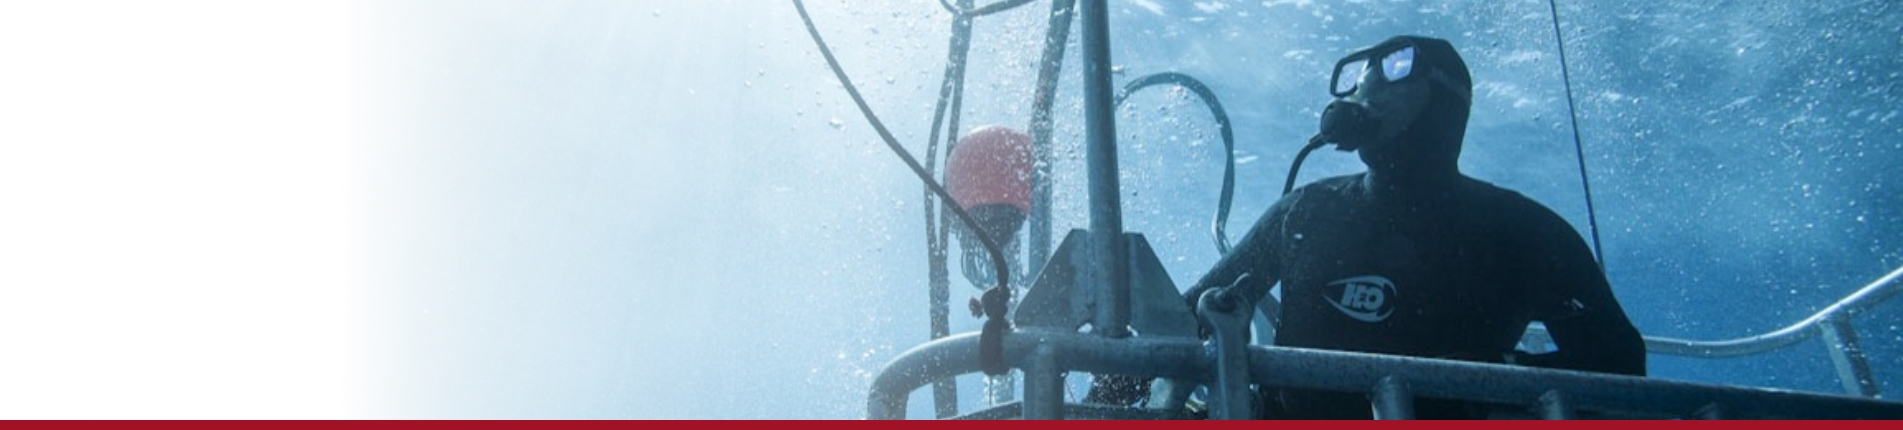 Witherspoon Associations, scuba insurance